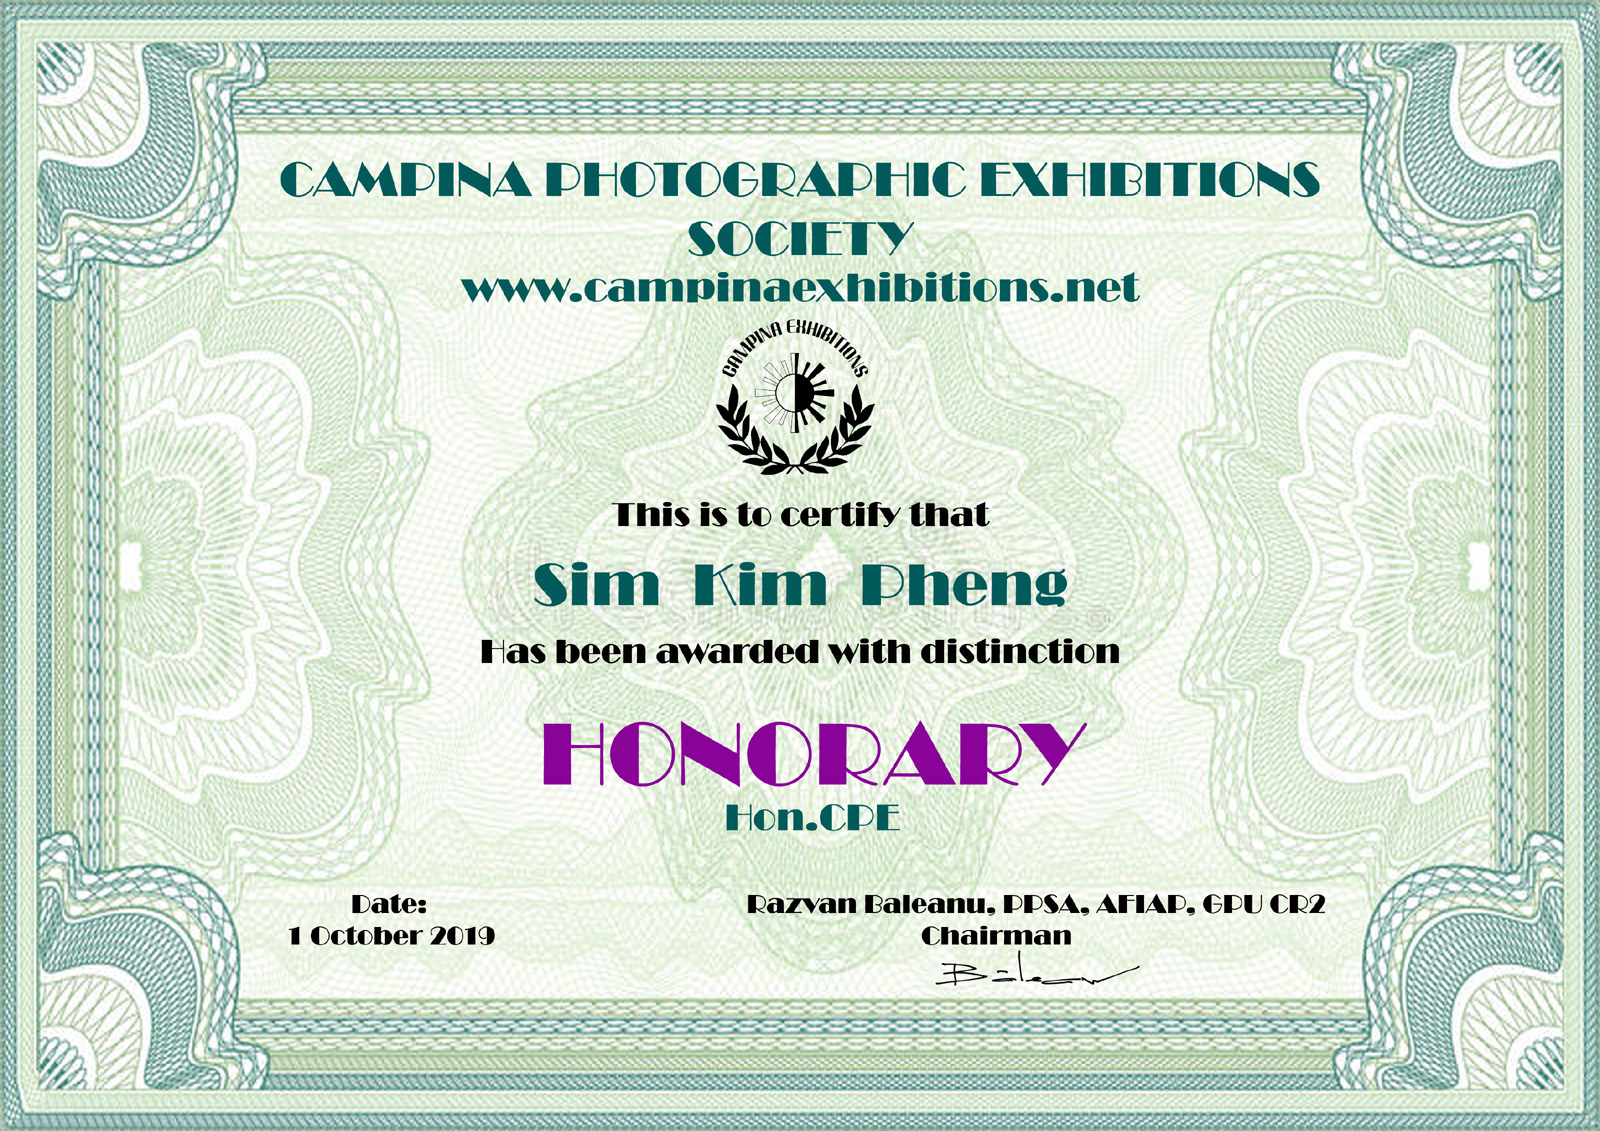 Sim Kim Pheng - HONORARY - Hon.CPE - Campina Photographic Exhibitions Society